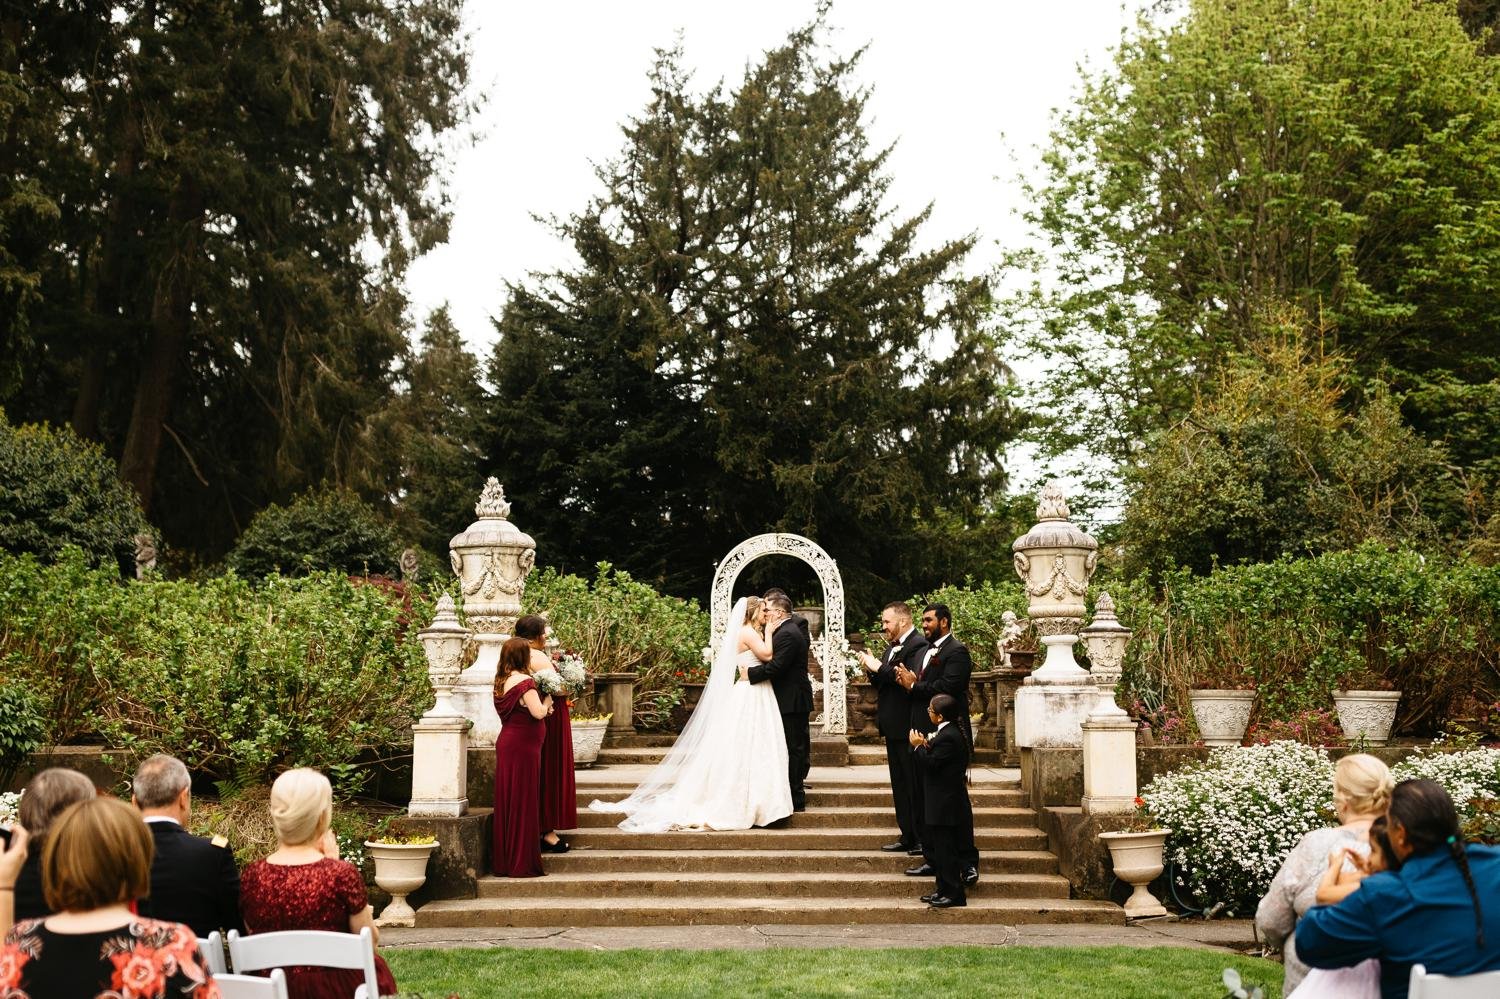 thornewood castle outdoor wedding ceremony